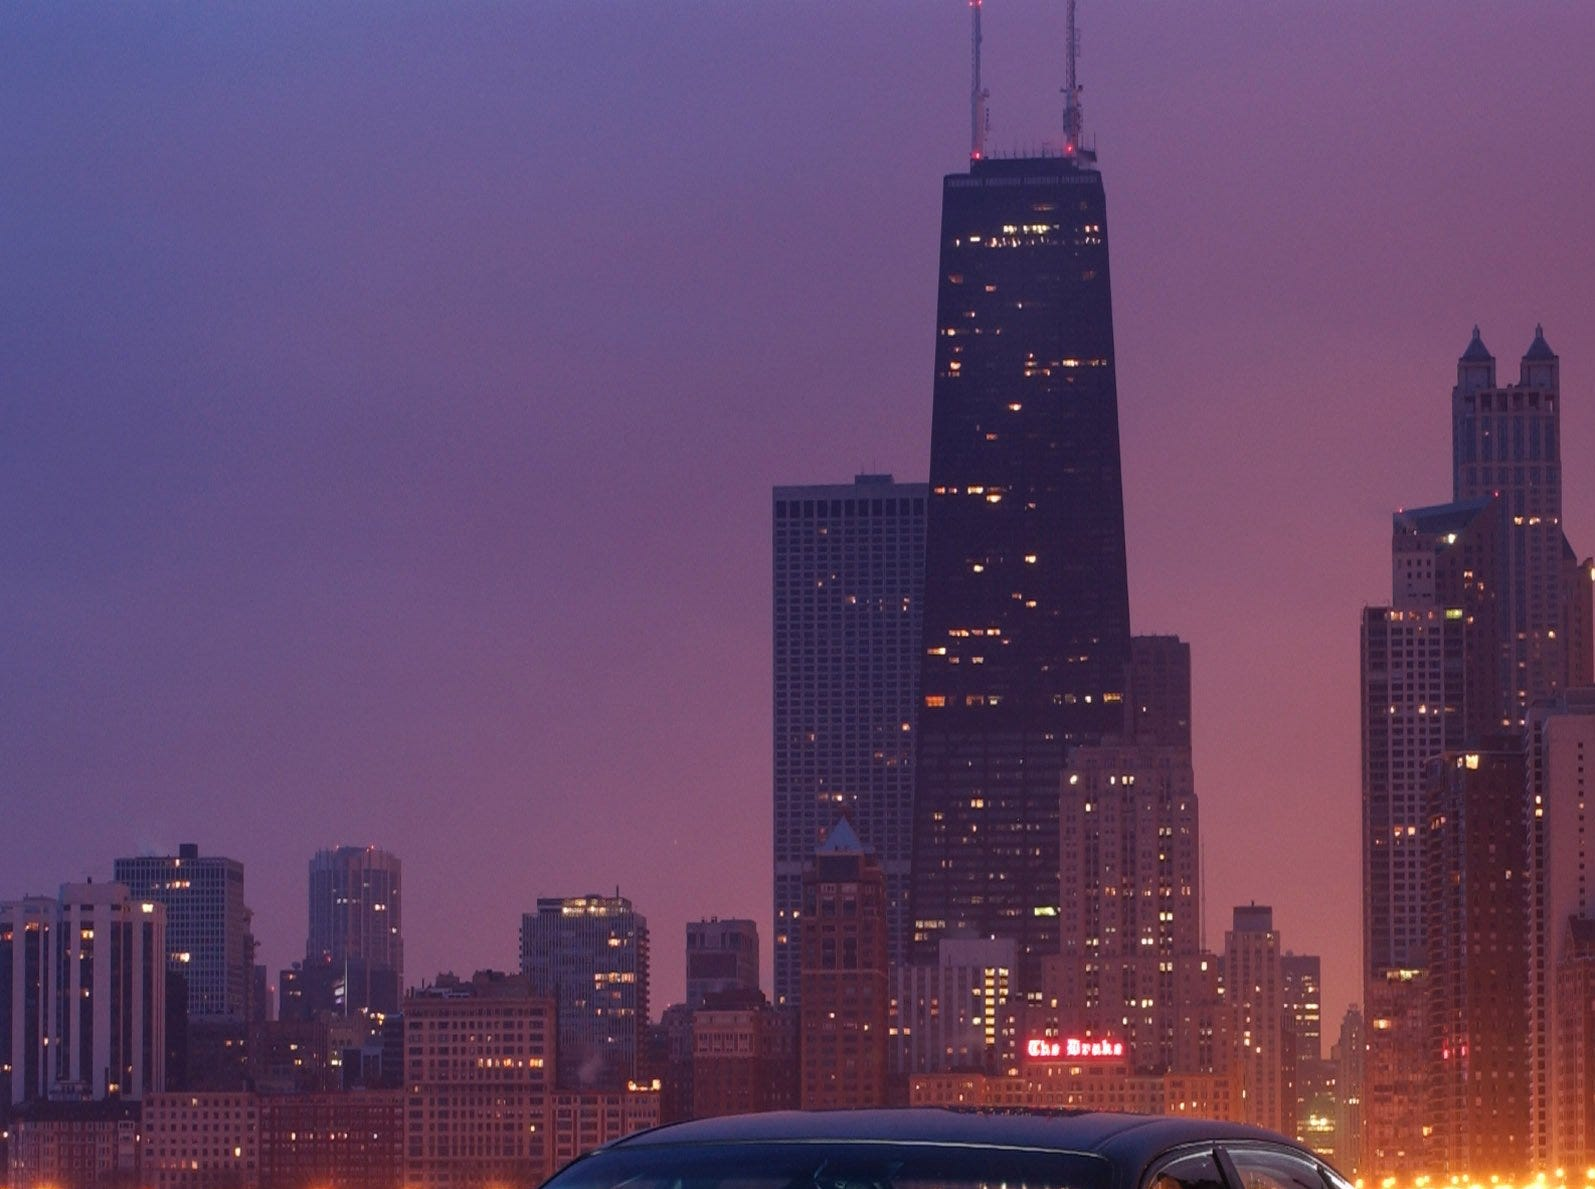 Day breaks over Chicago and the brand new 2004 Chevy Impala SS, which will make its world debut at the Chicago Auto Show Wednesday, Feb. 12 2003.